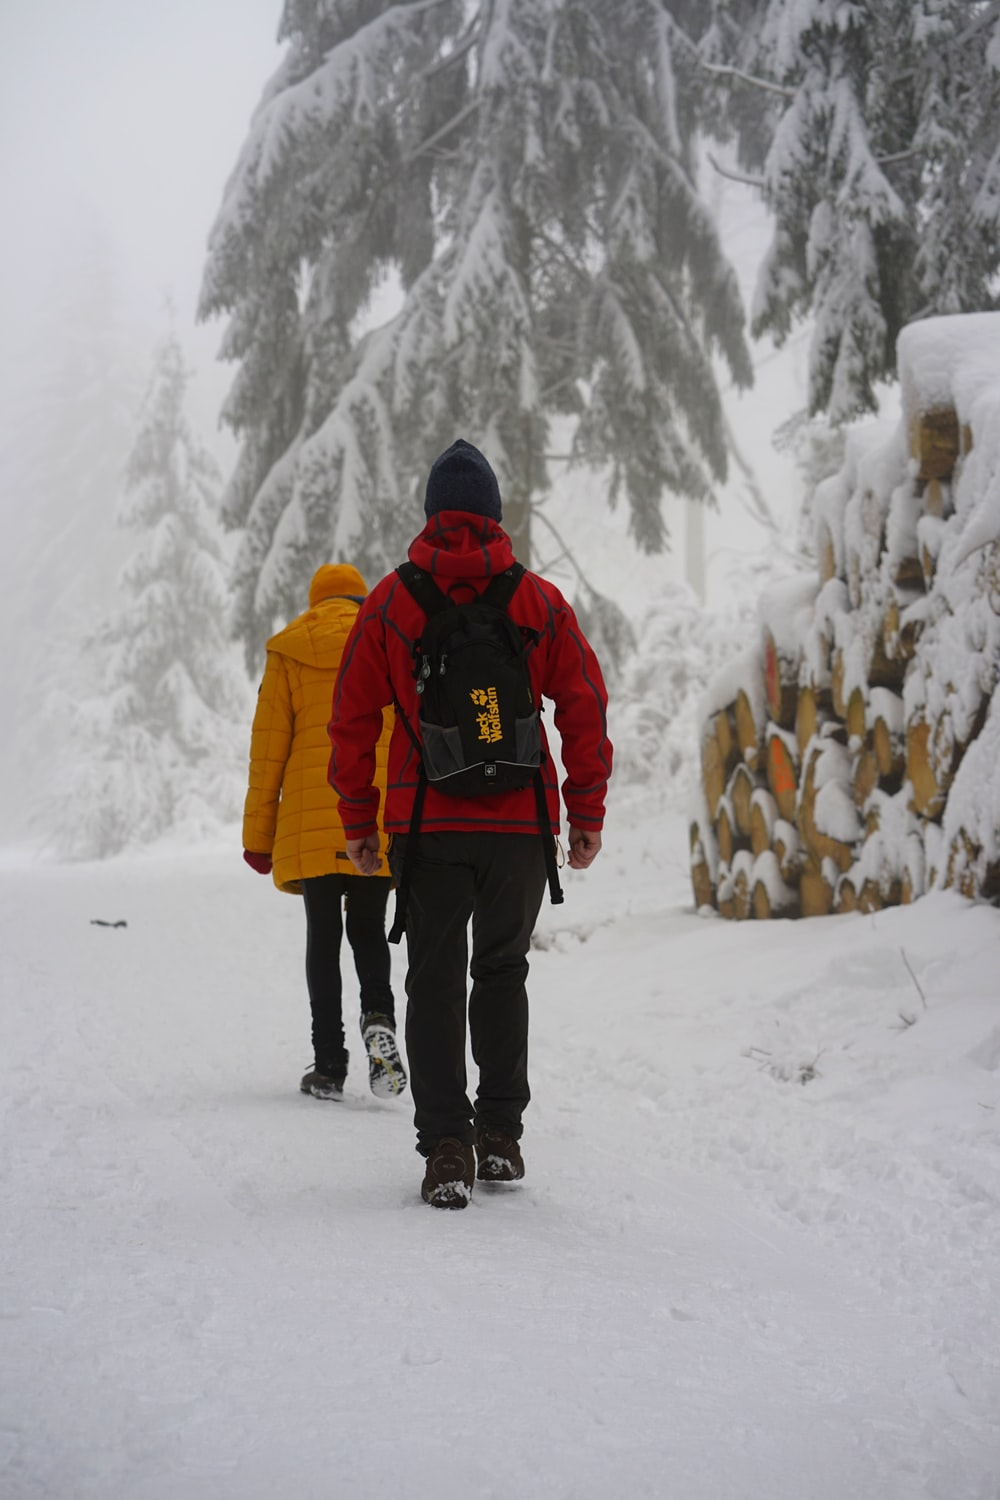 man in red and black jacket standing on snow covered ground during daytime